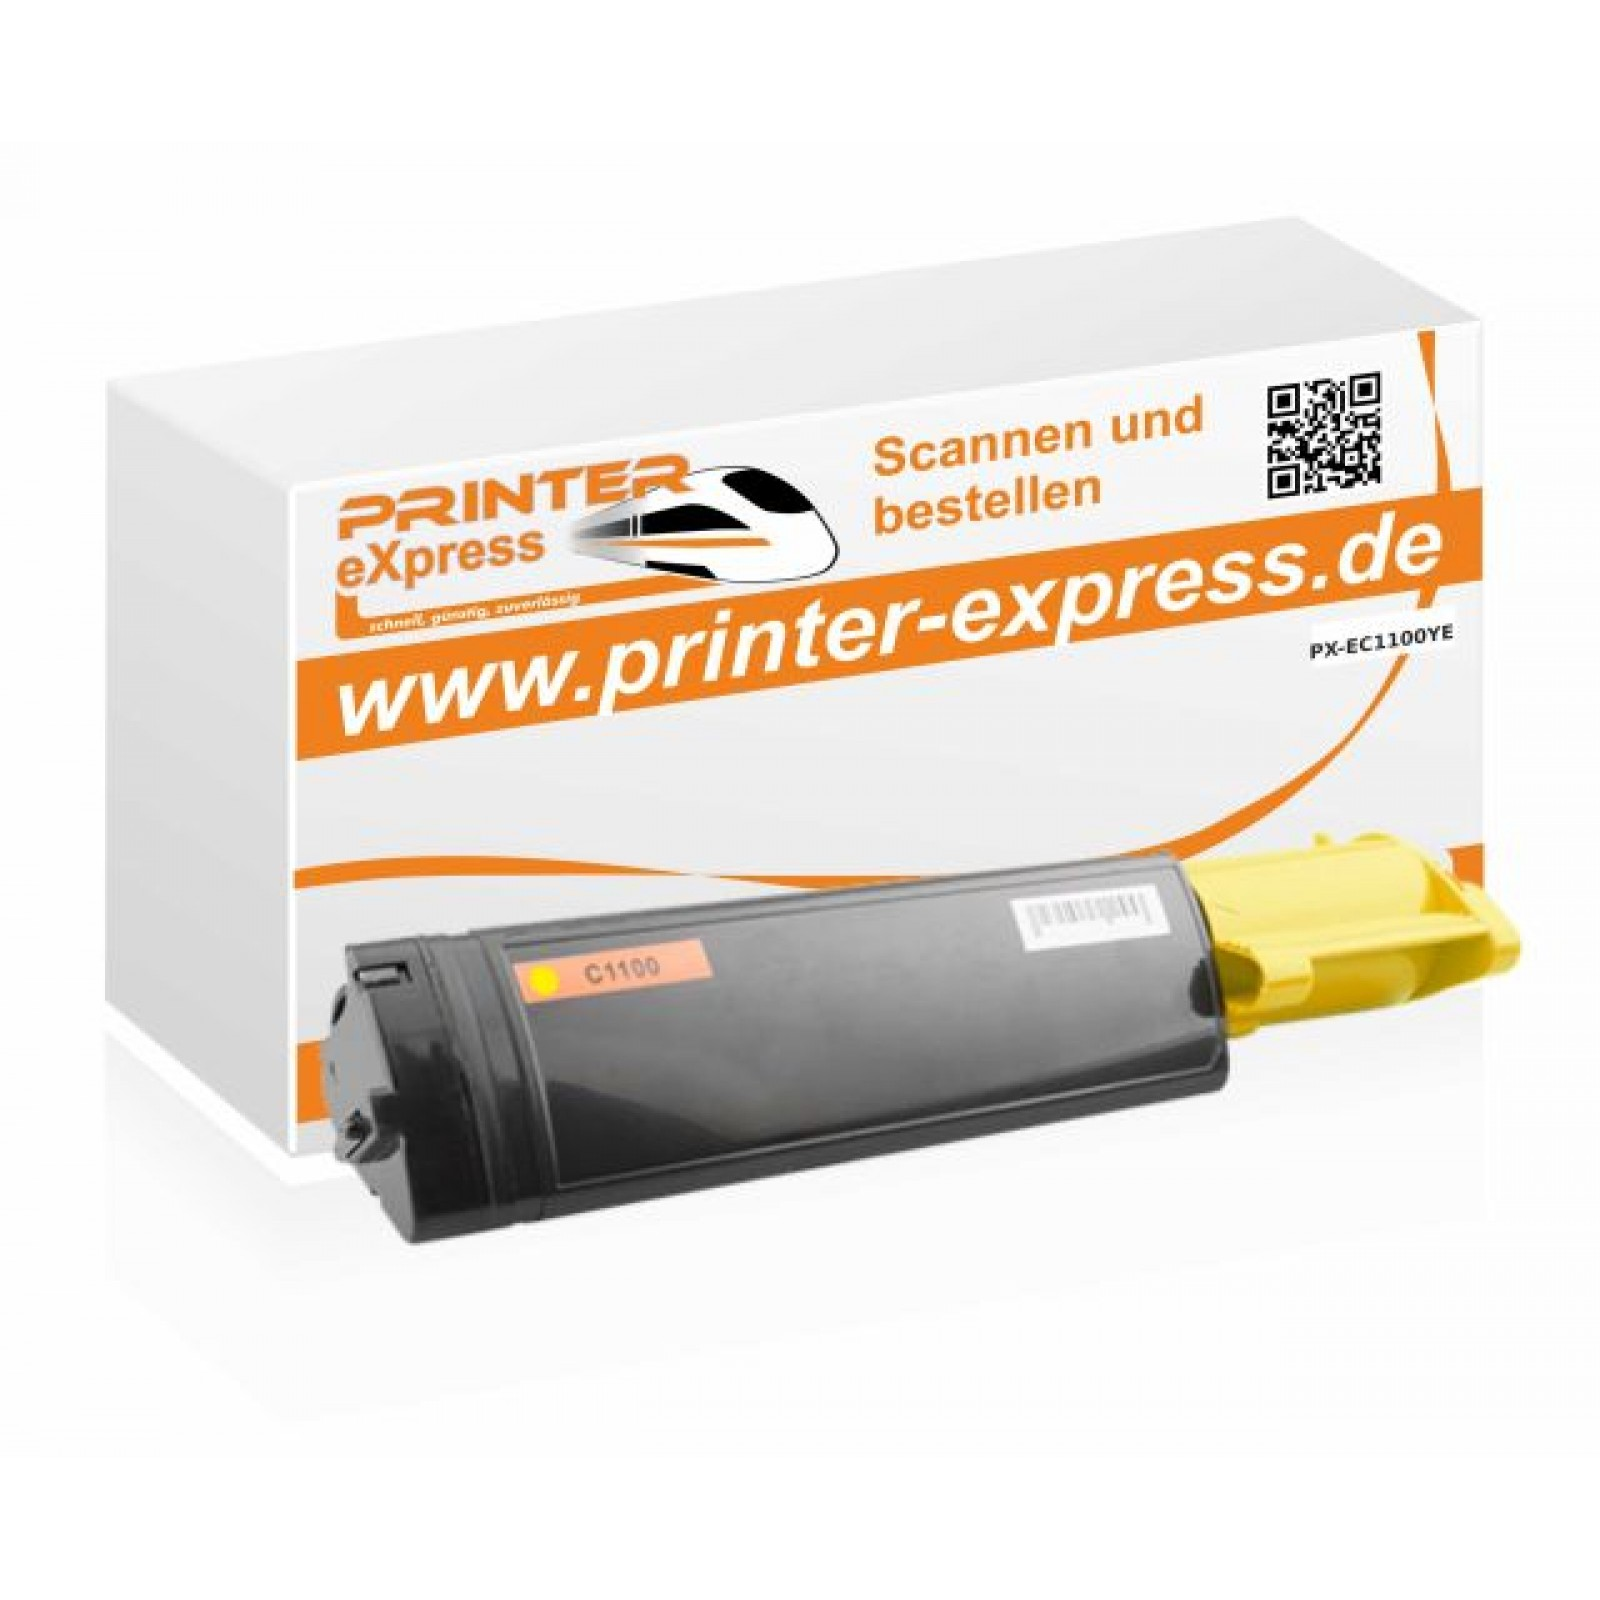 Toner alternativ zu Epson C13S050187, S050187, C1100...